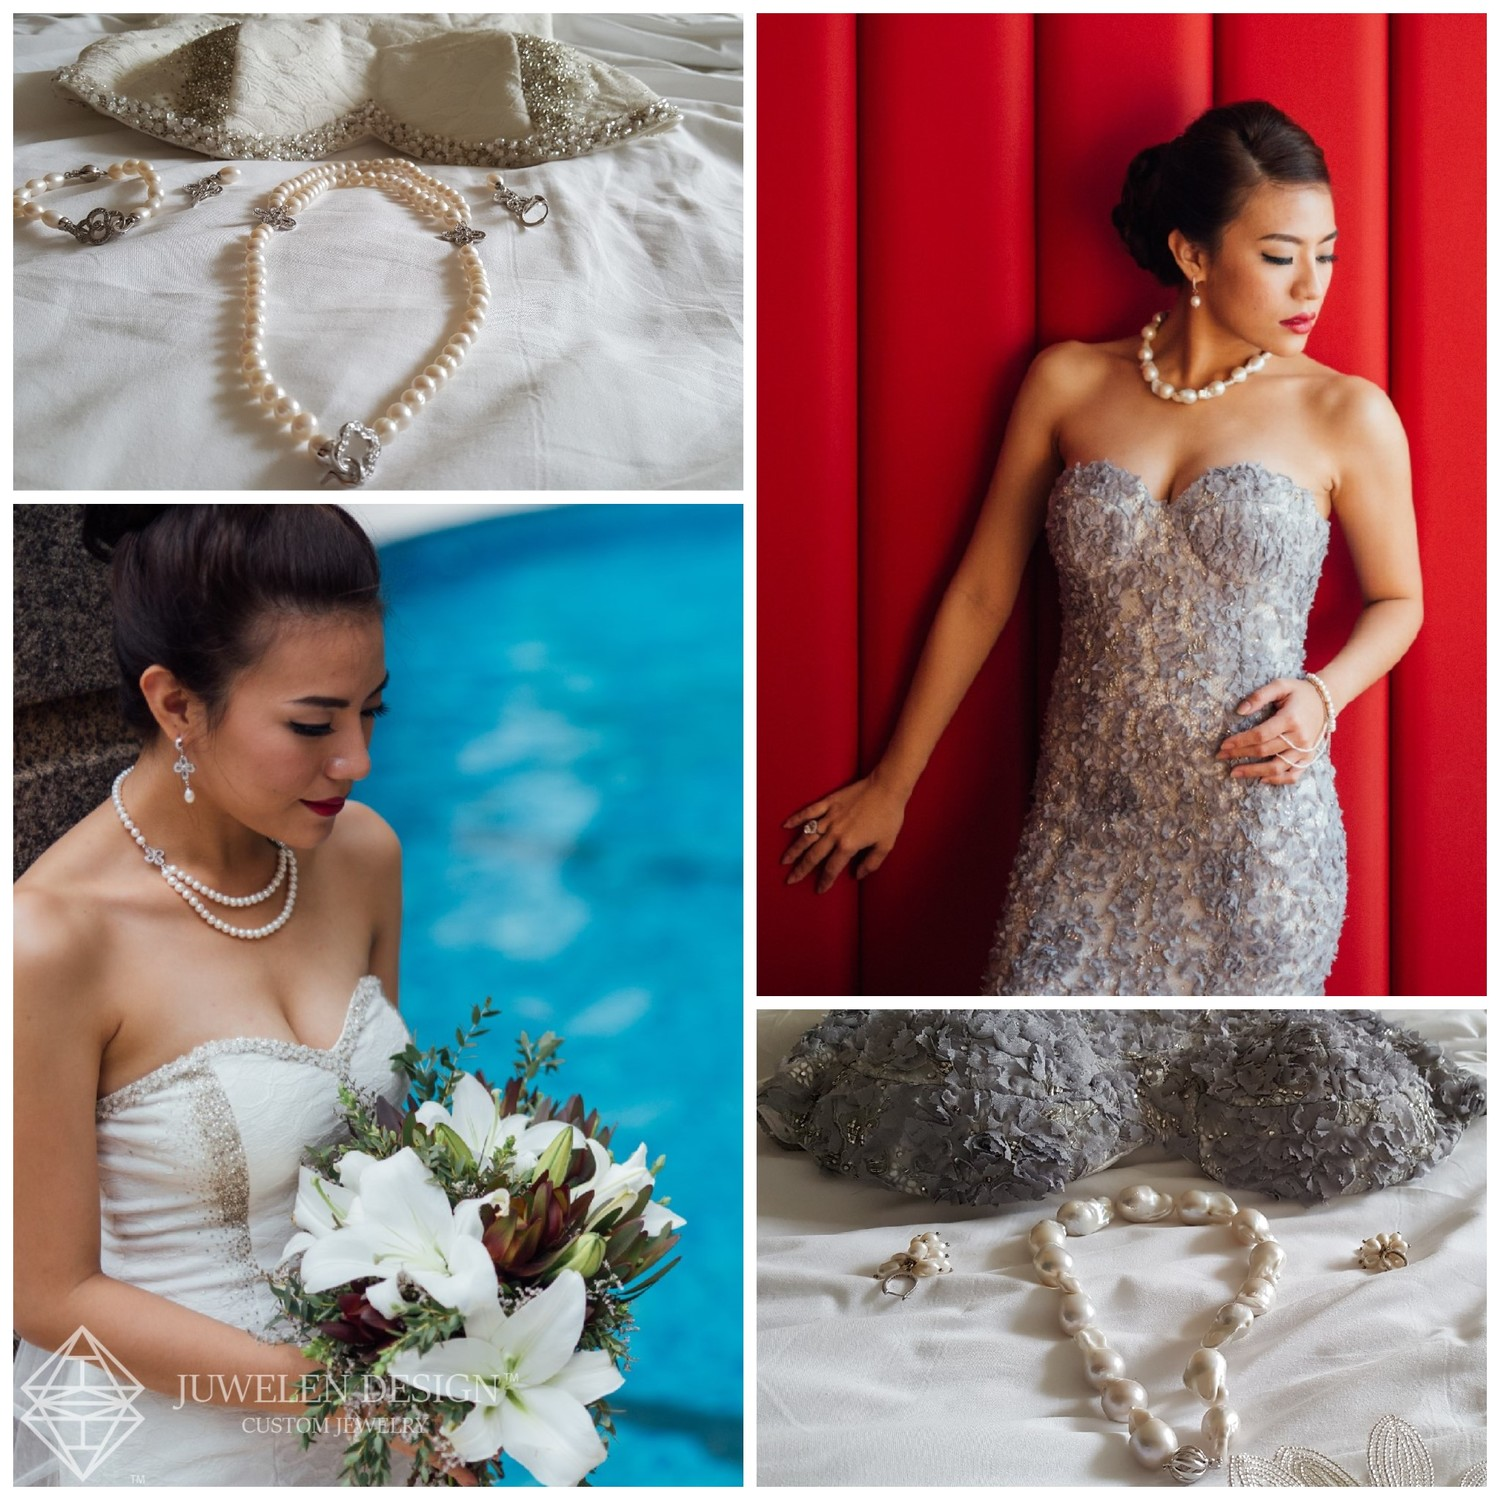 Pearl Necklace For Bride And Wedding | Ivy Teong | Pulse | LinkedIn